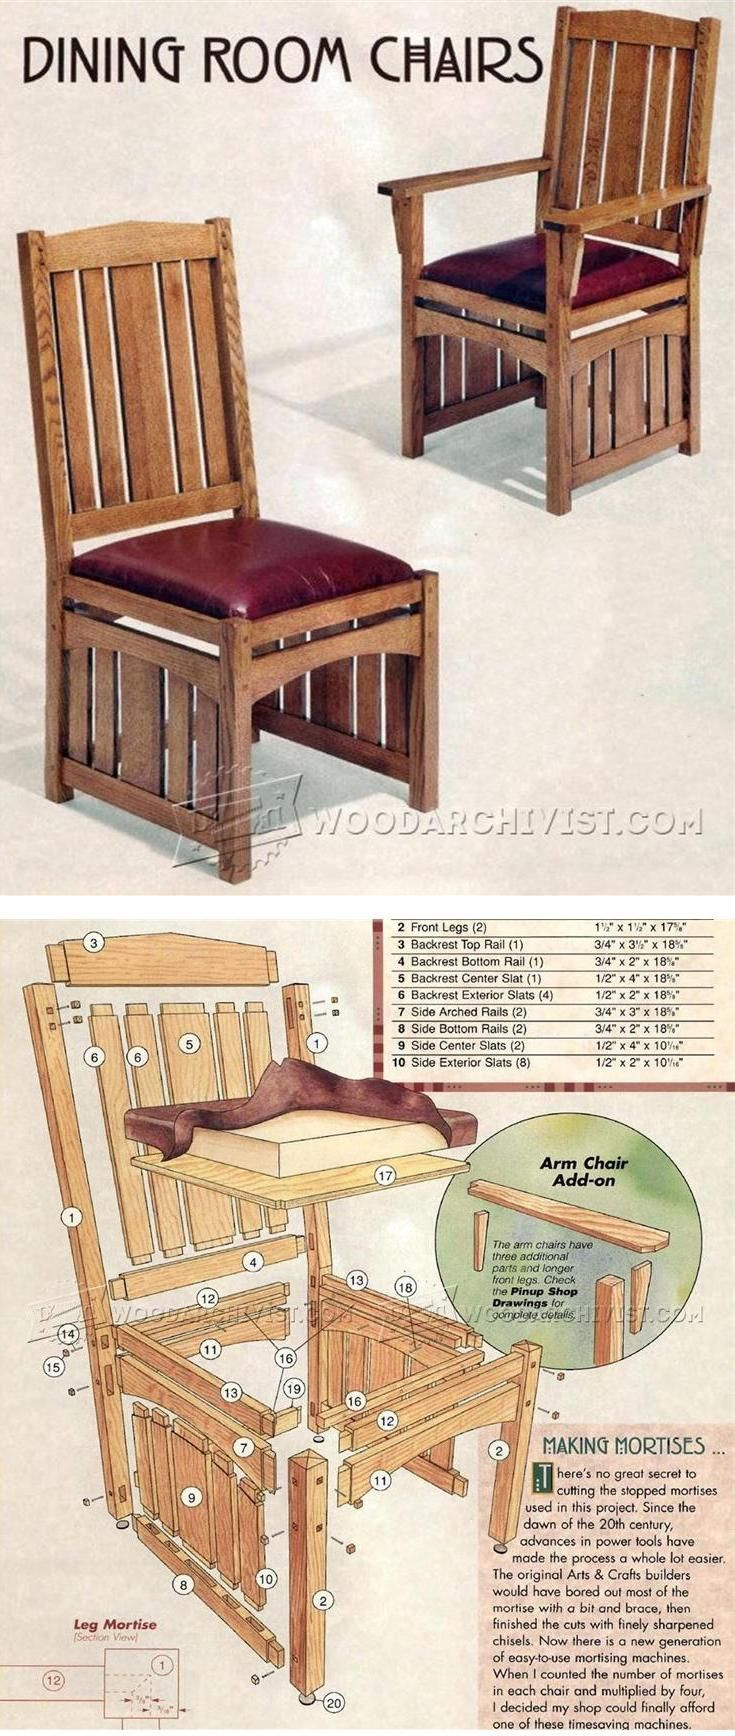 Dining room chairs plans furniture plans and projects woodarchivist com